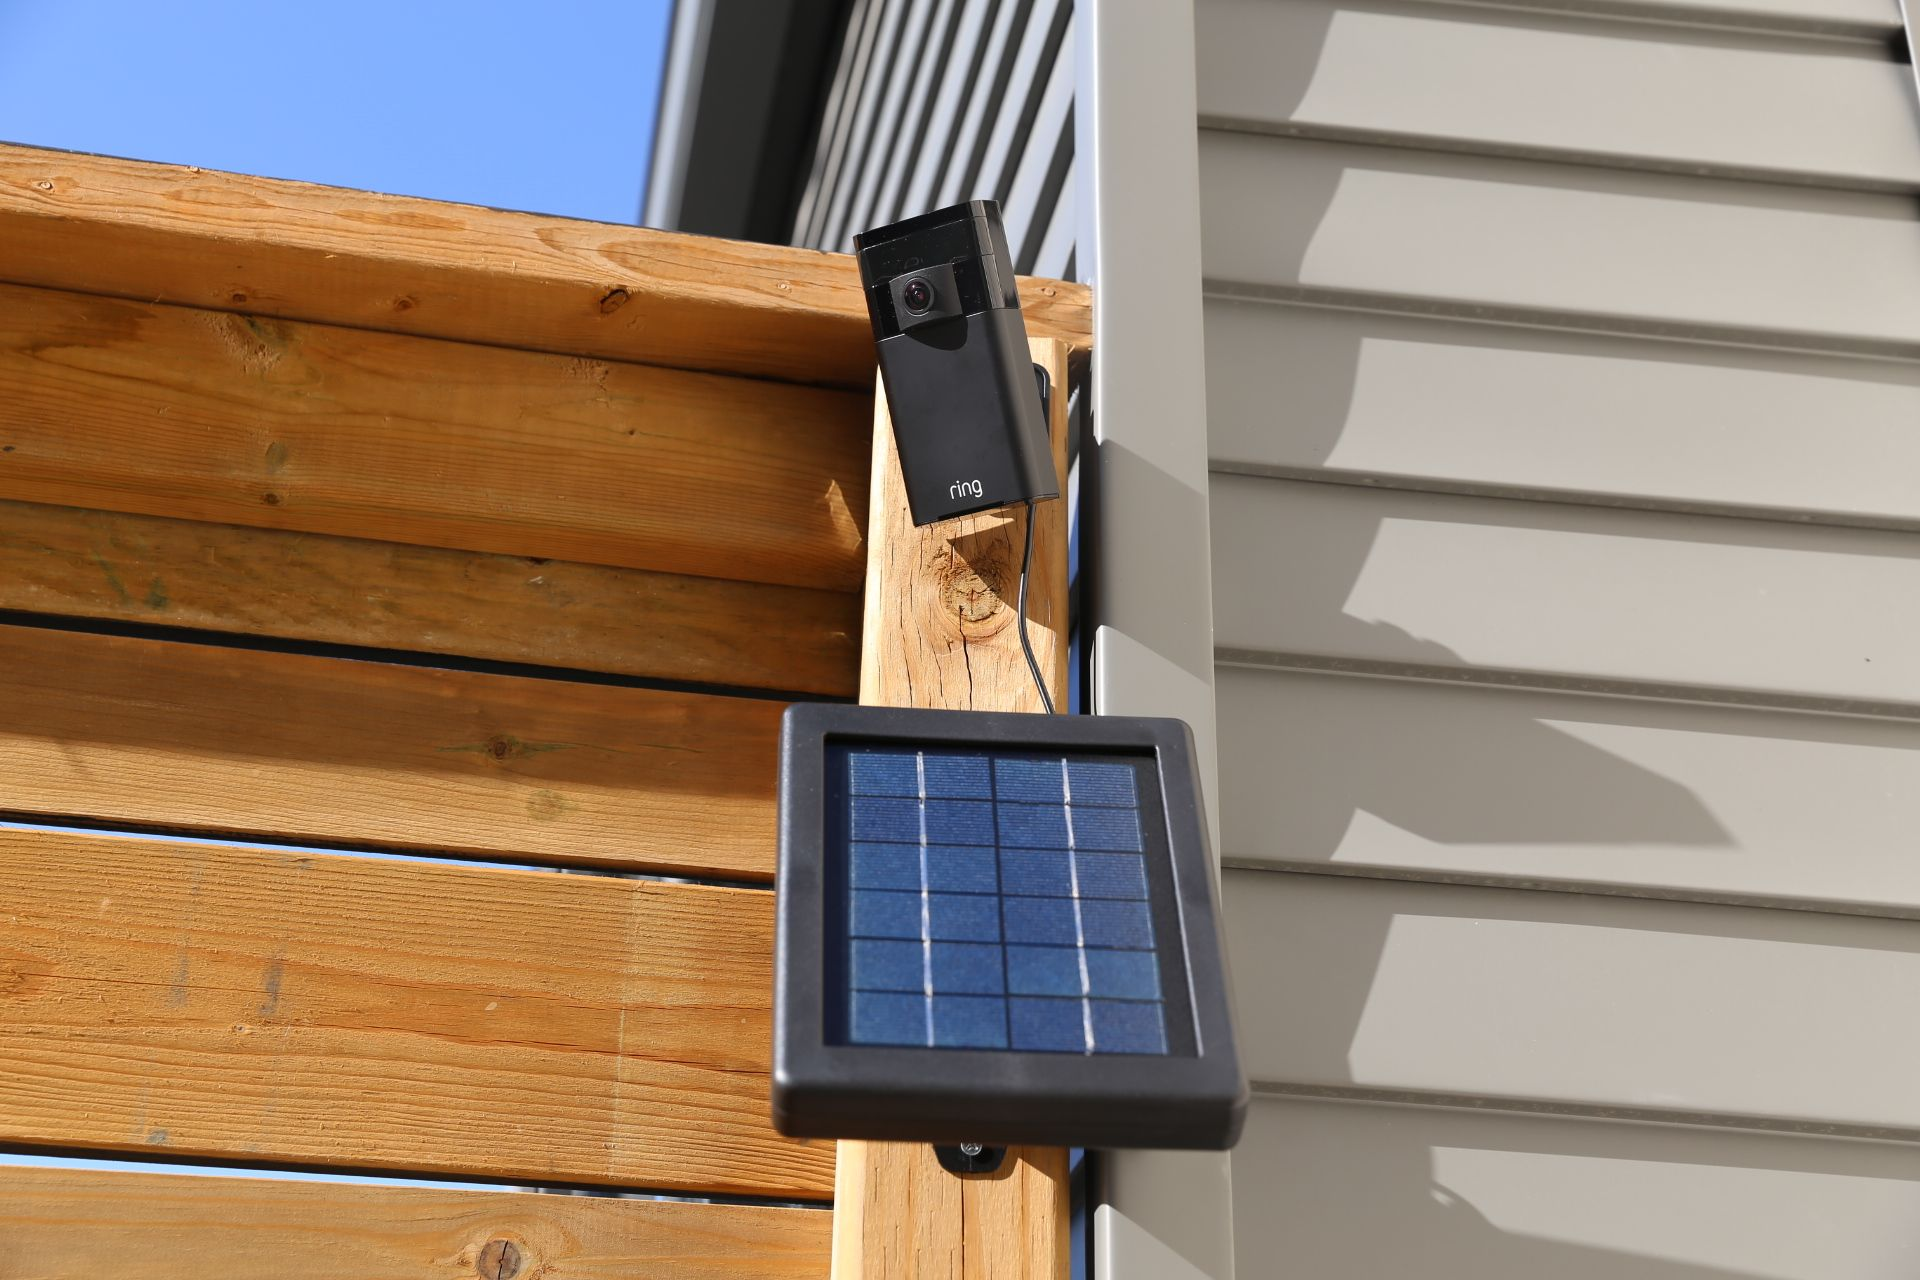 Simple Photovoltaic Solar Power System Setup For The Remote Home Diy Solar Panel Solar Panel Installation Solar Heating